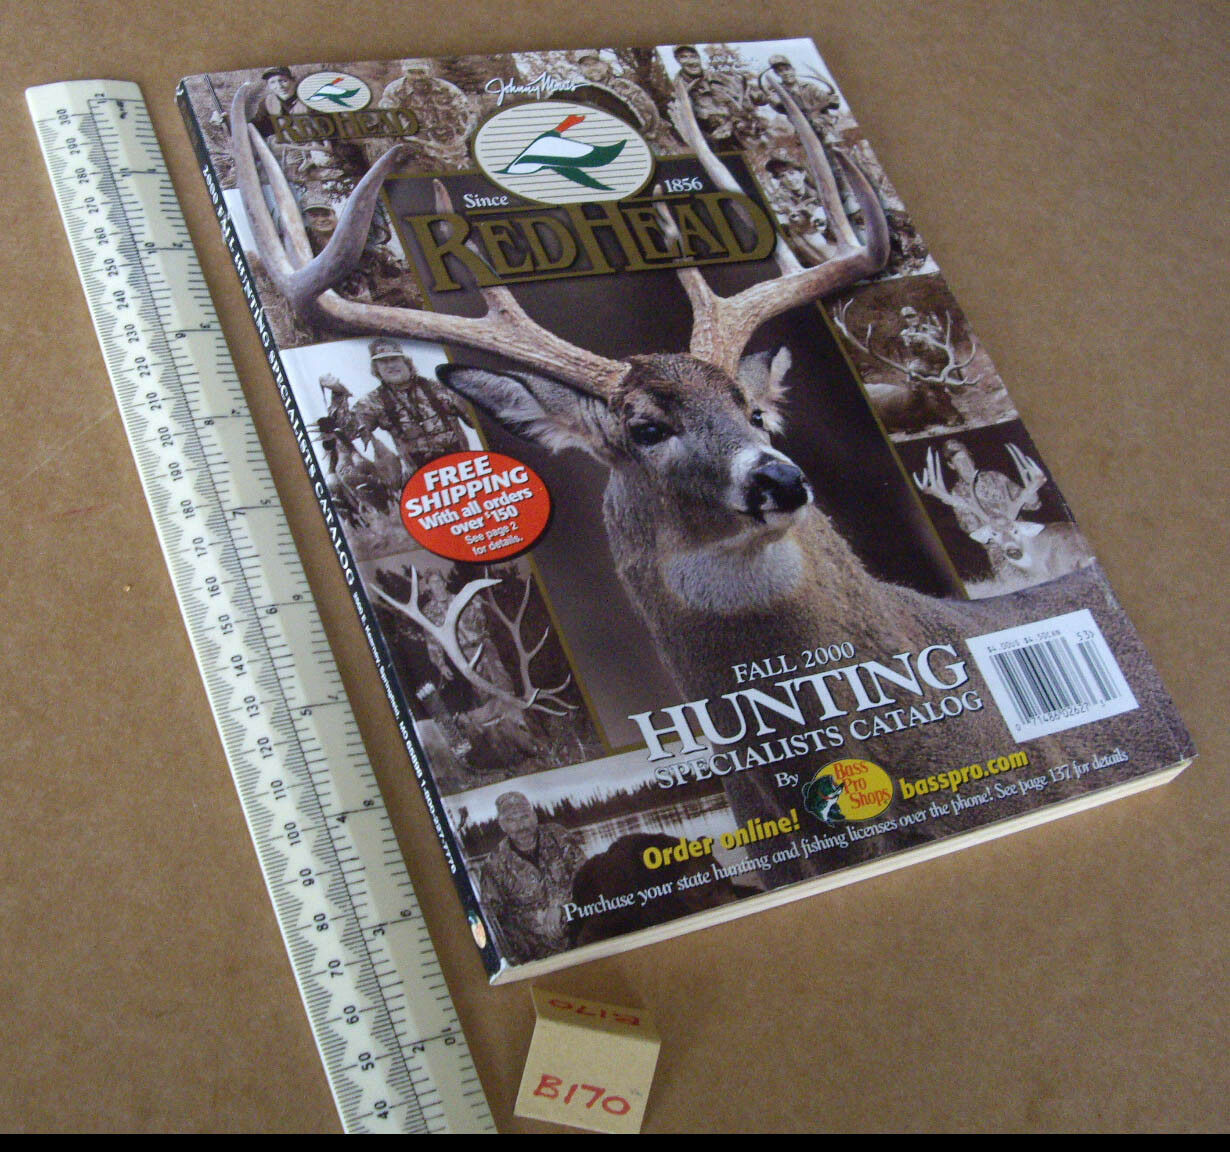 Redhead online hunting catalog